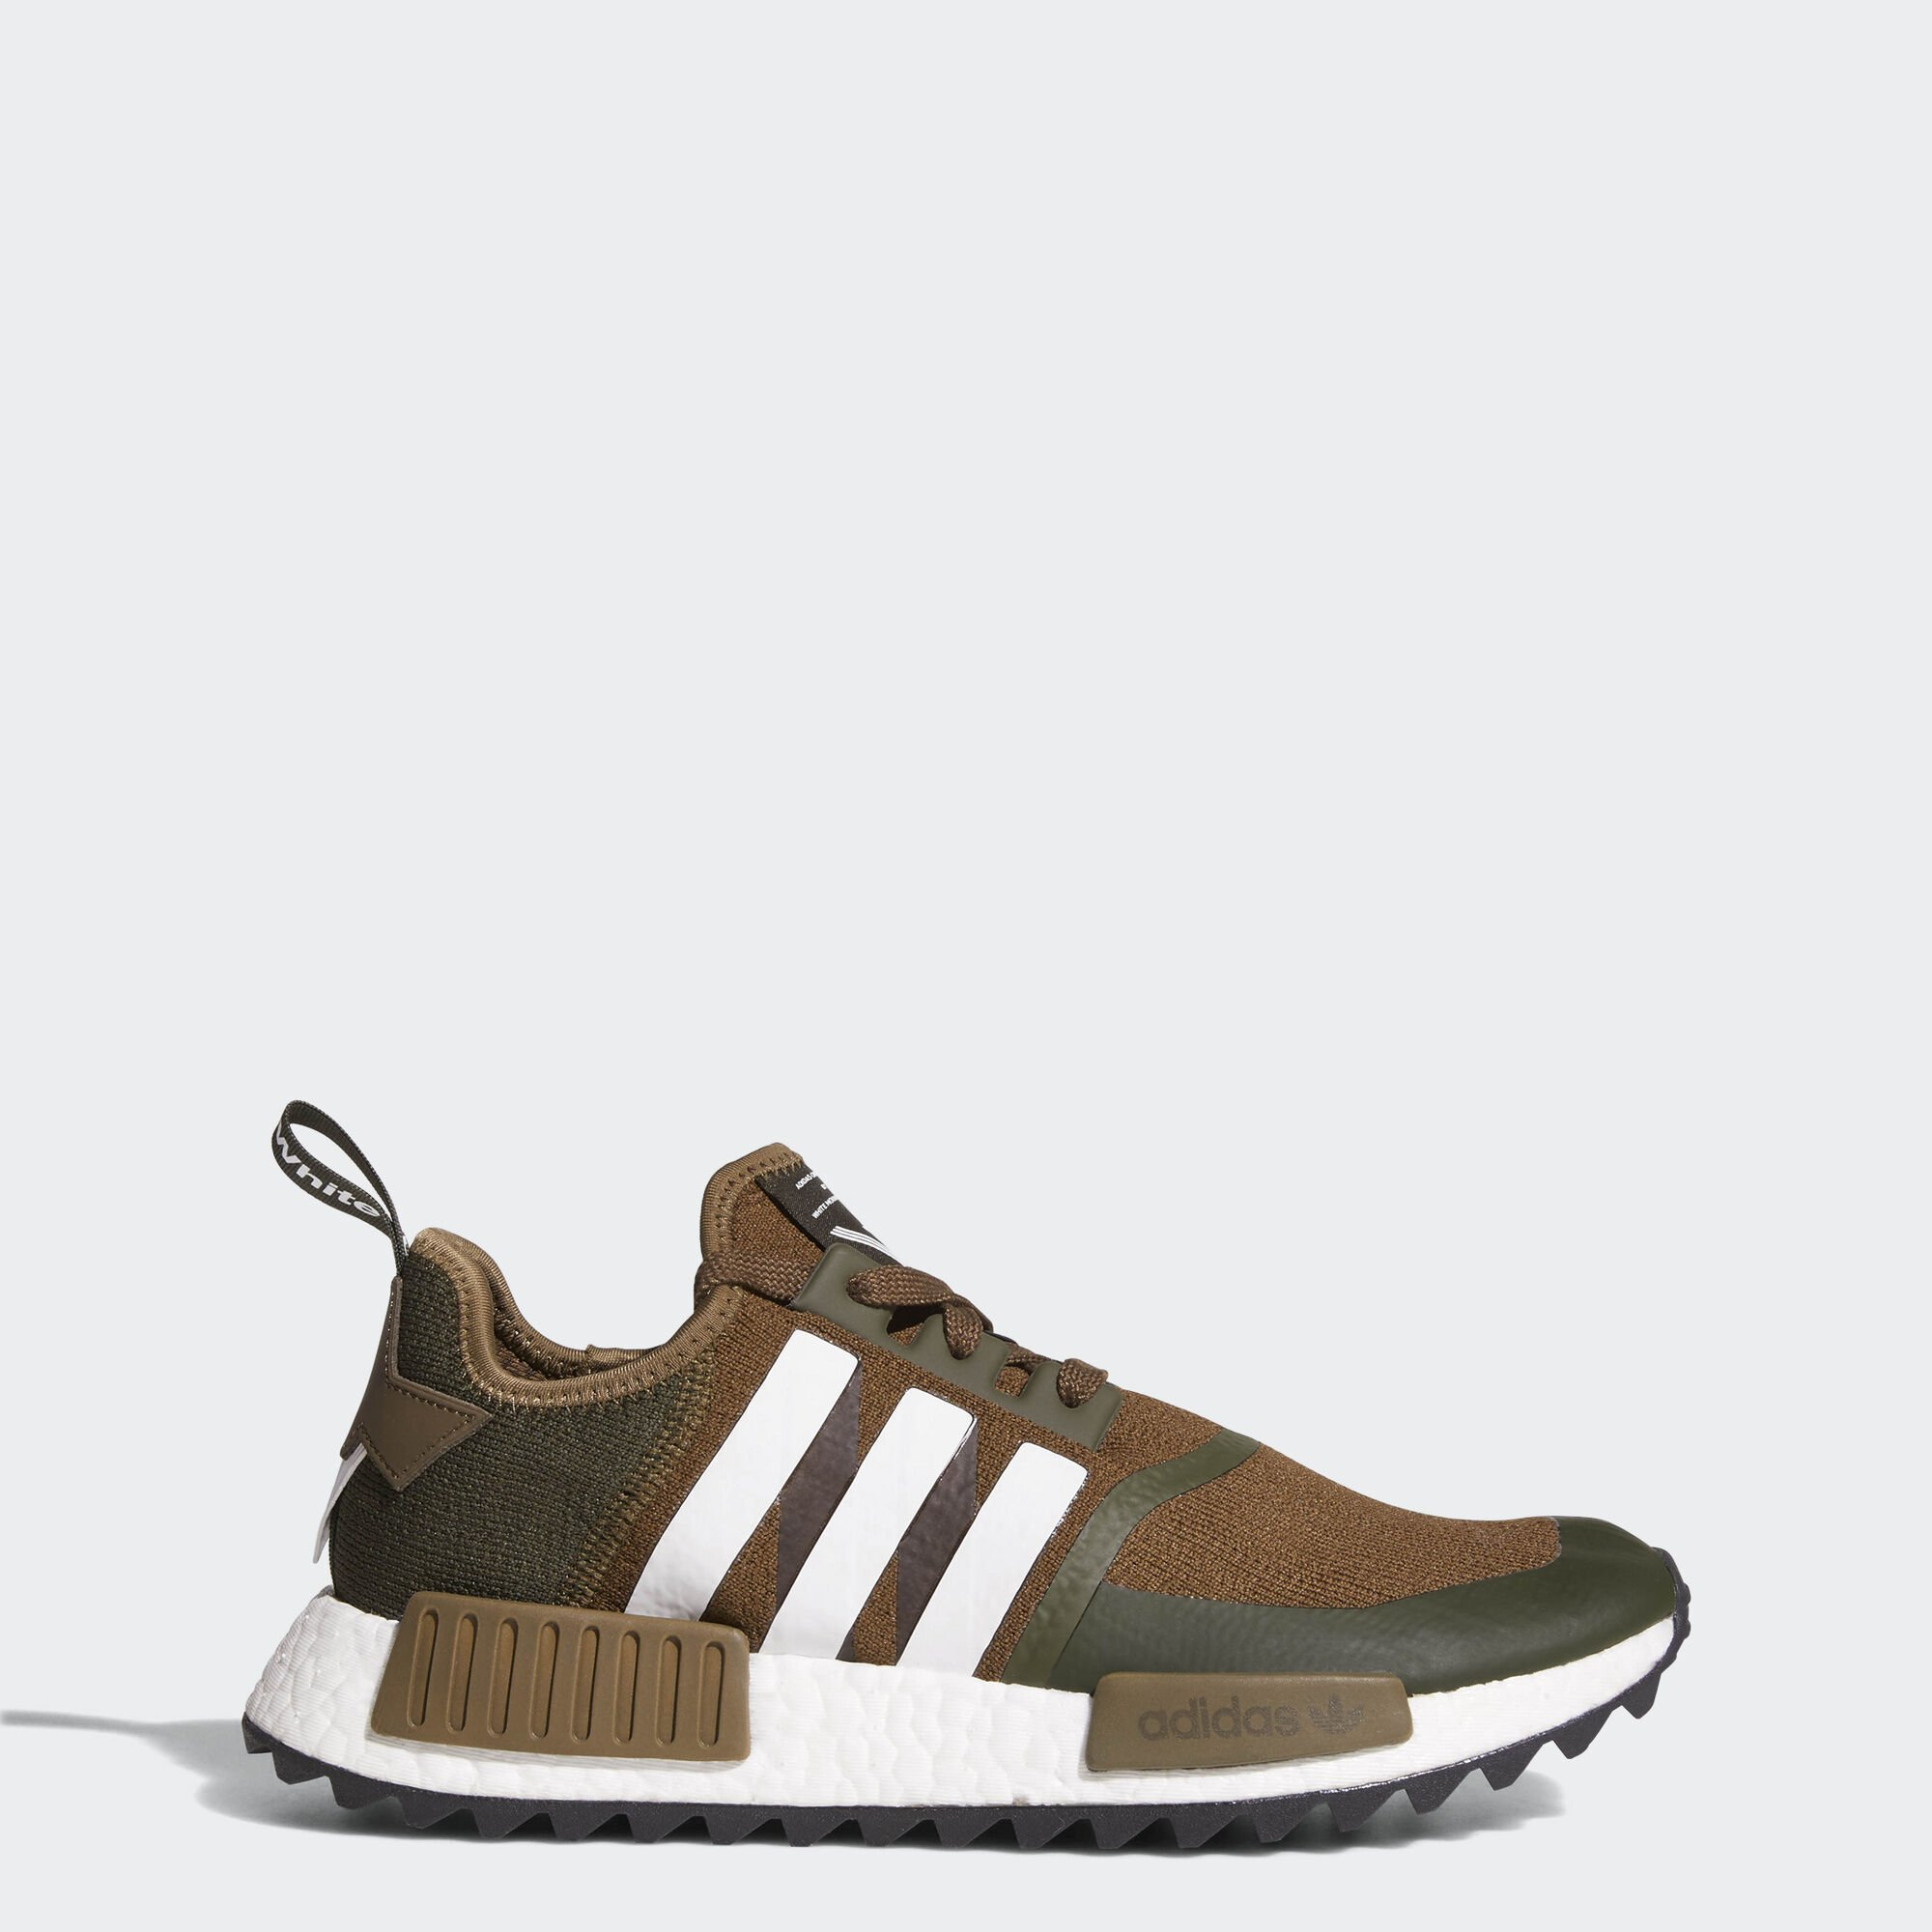 adidas  NMD R1 Trail White Mountaineering Trace Olive (CG3647)